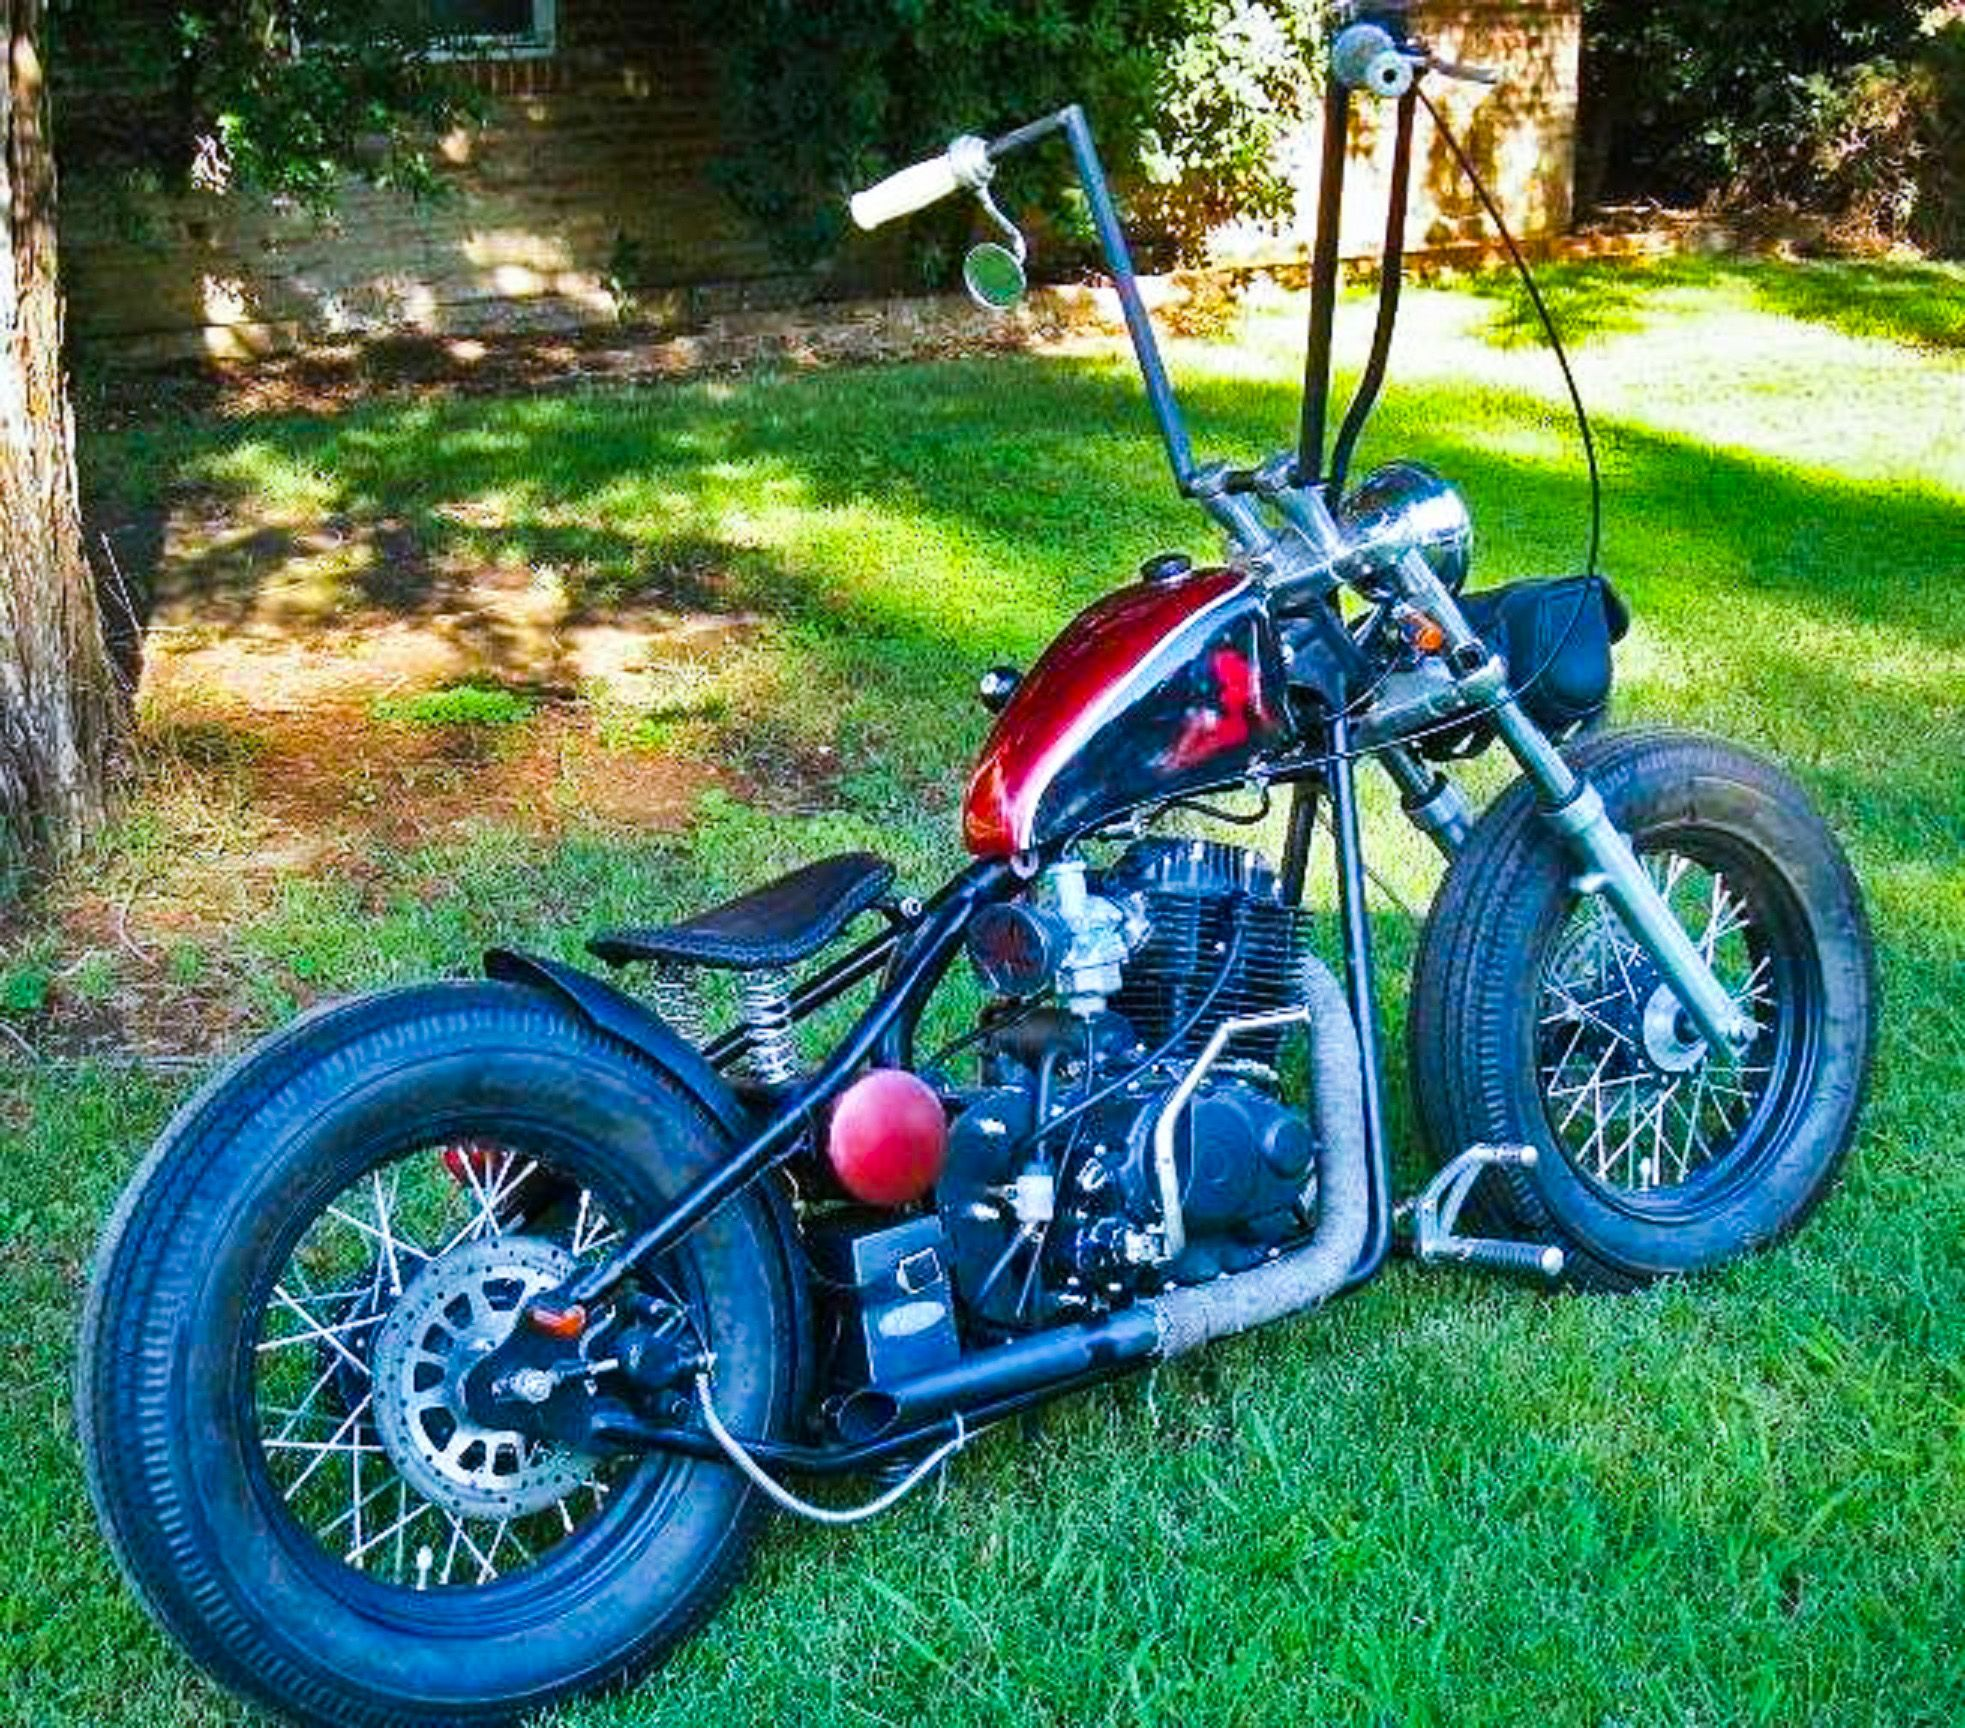 A 200cc HK-I Kikker 5150 Hardknock with Custom Ape Hangers ... Bobber Motorcycle With Ape Hangers